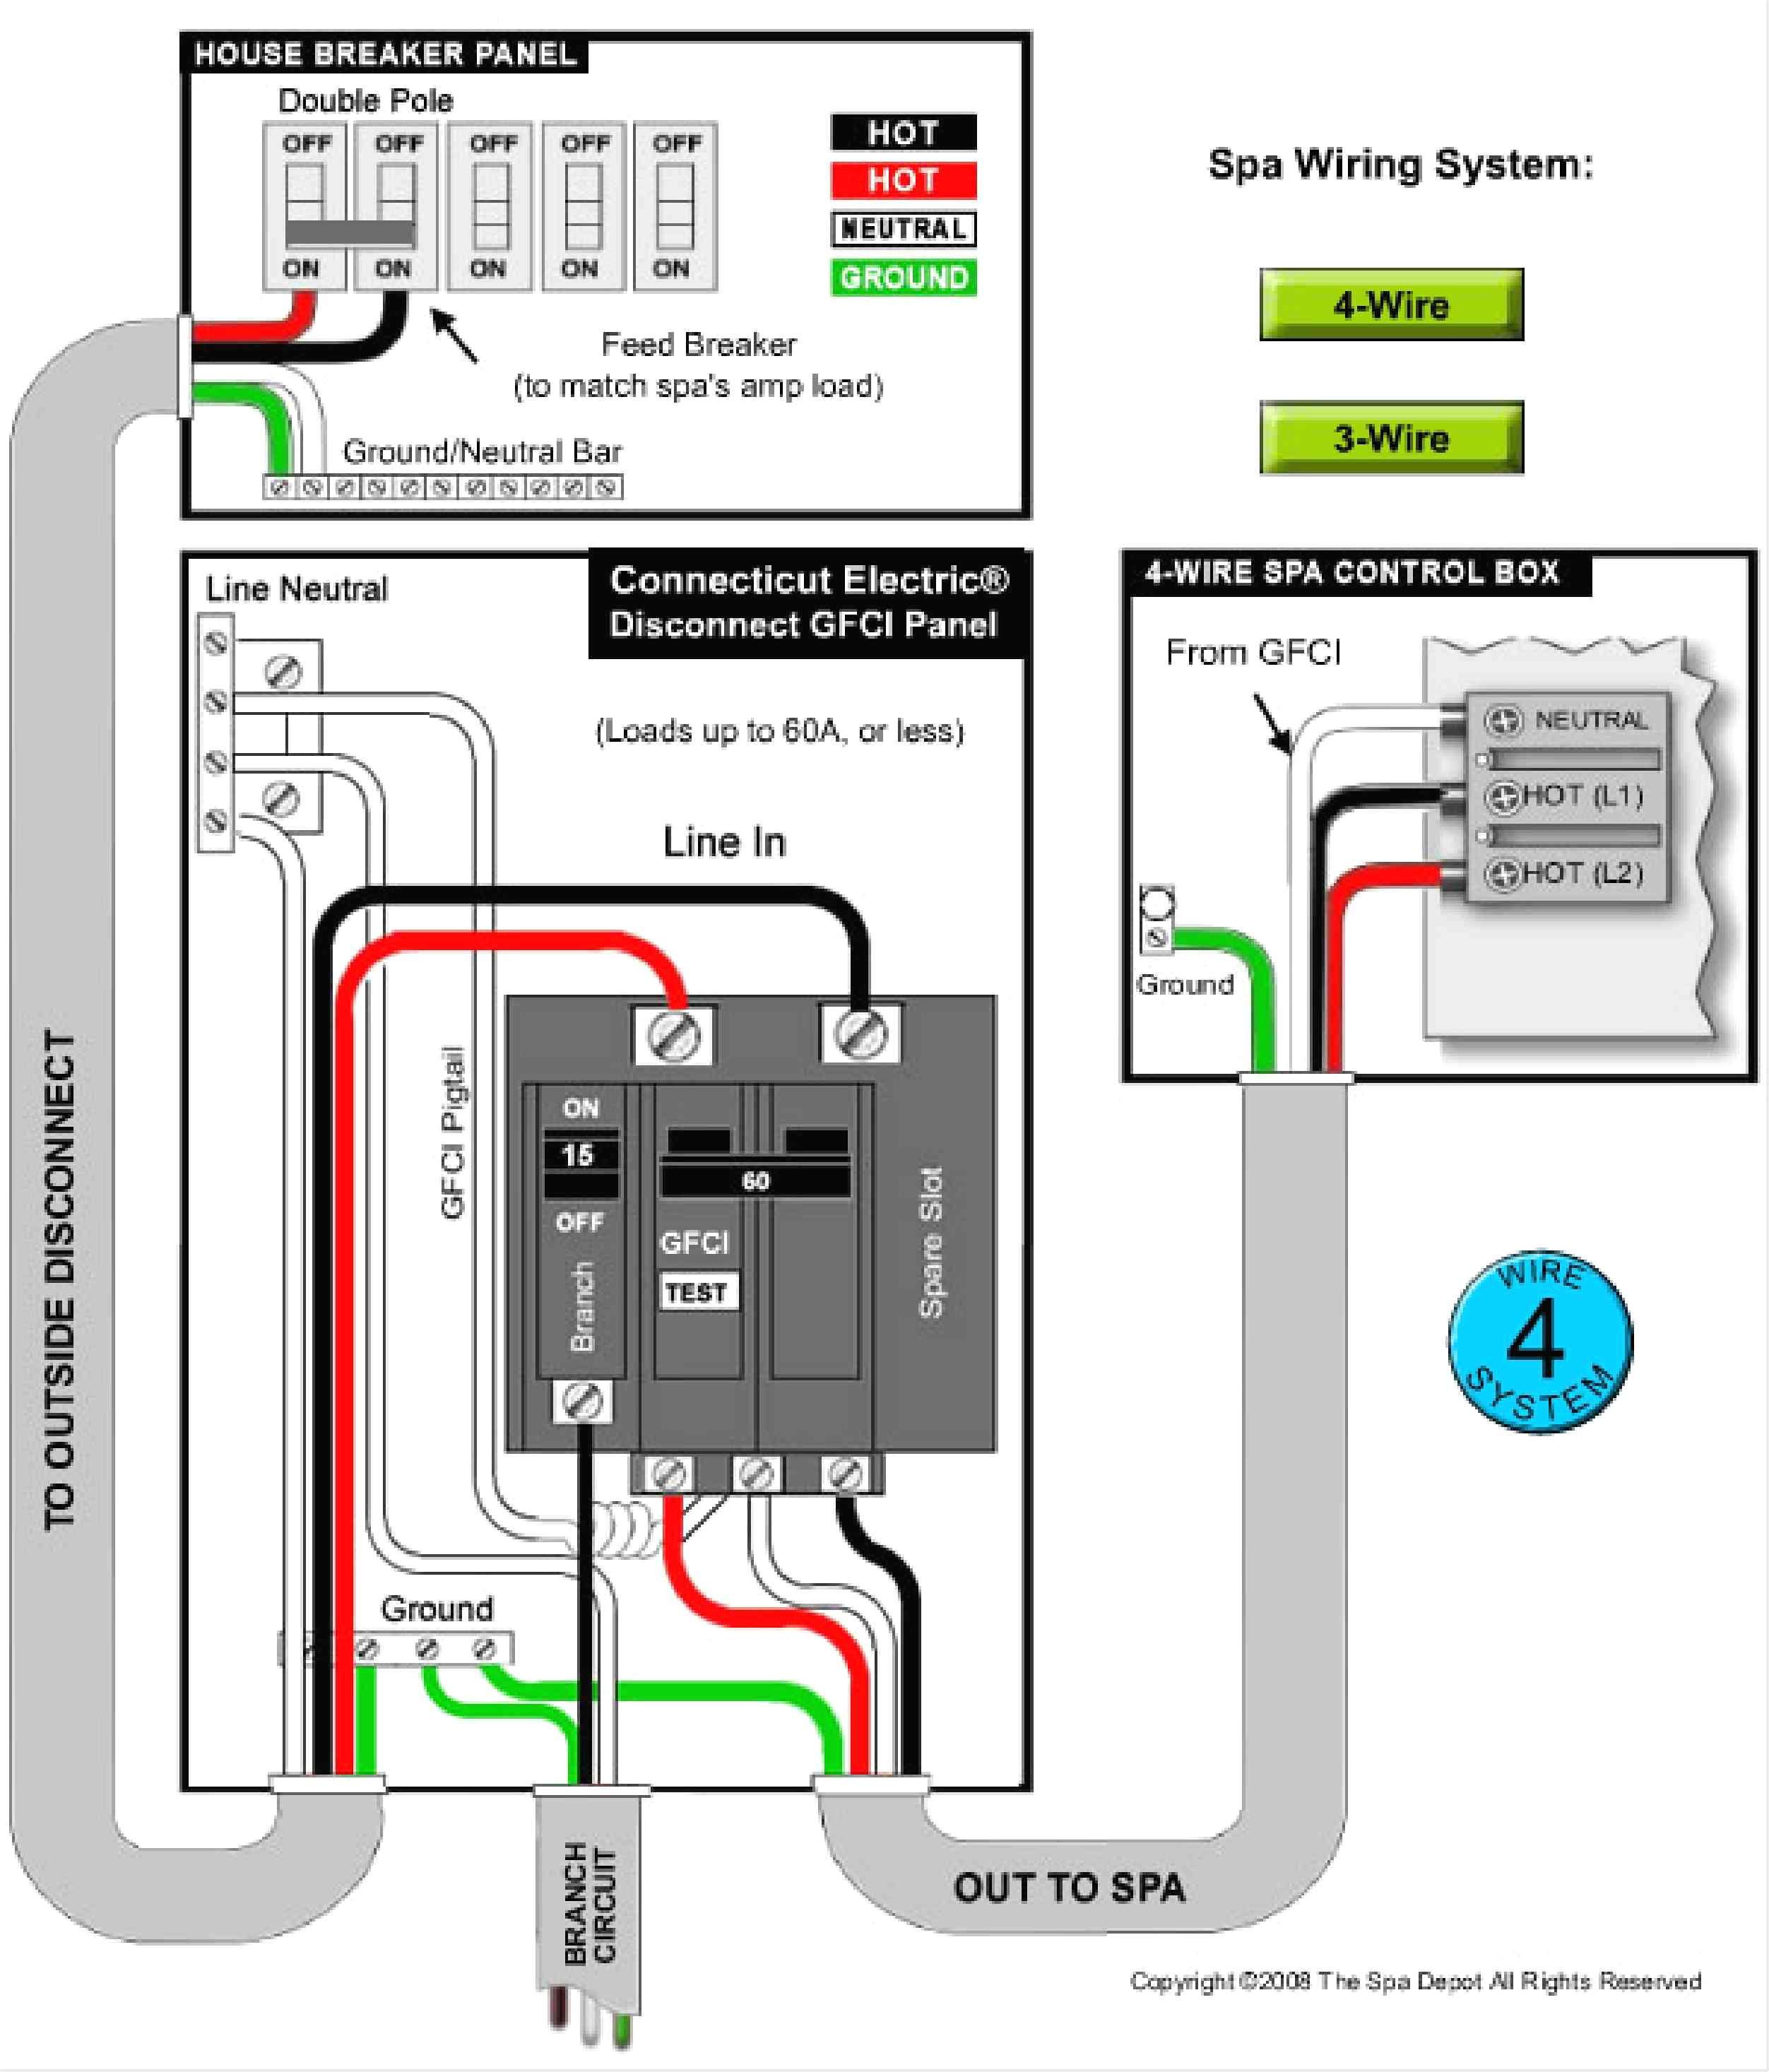 3 Wire Solenoid Diagram | Index listing of wiring diagrams  Pole Solenoid Wiring Diagrams On The Firewall on 3 pole switch wiring diagrams, 3 pole relay diagram, 3 pole starter solenoid, contactors and relays diagrams, 3 phase motor wiring diagrams,